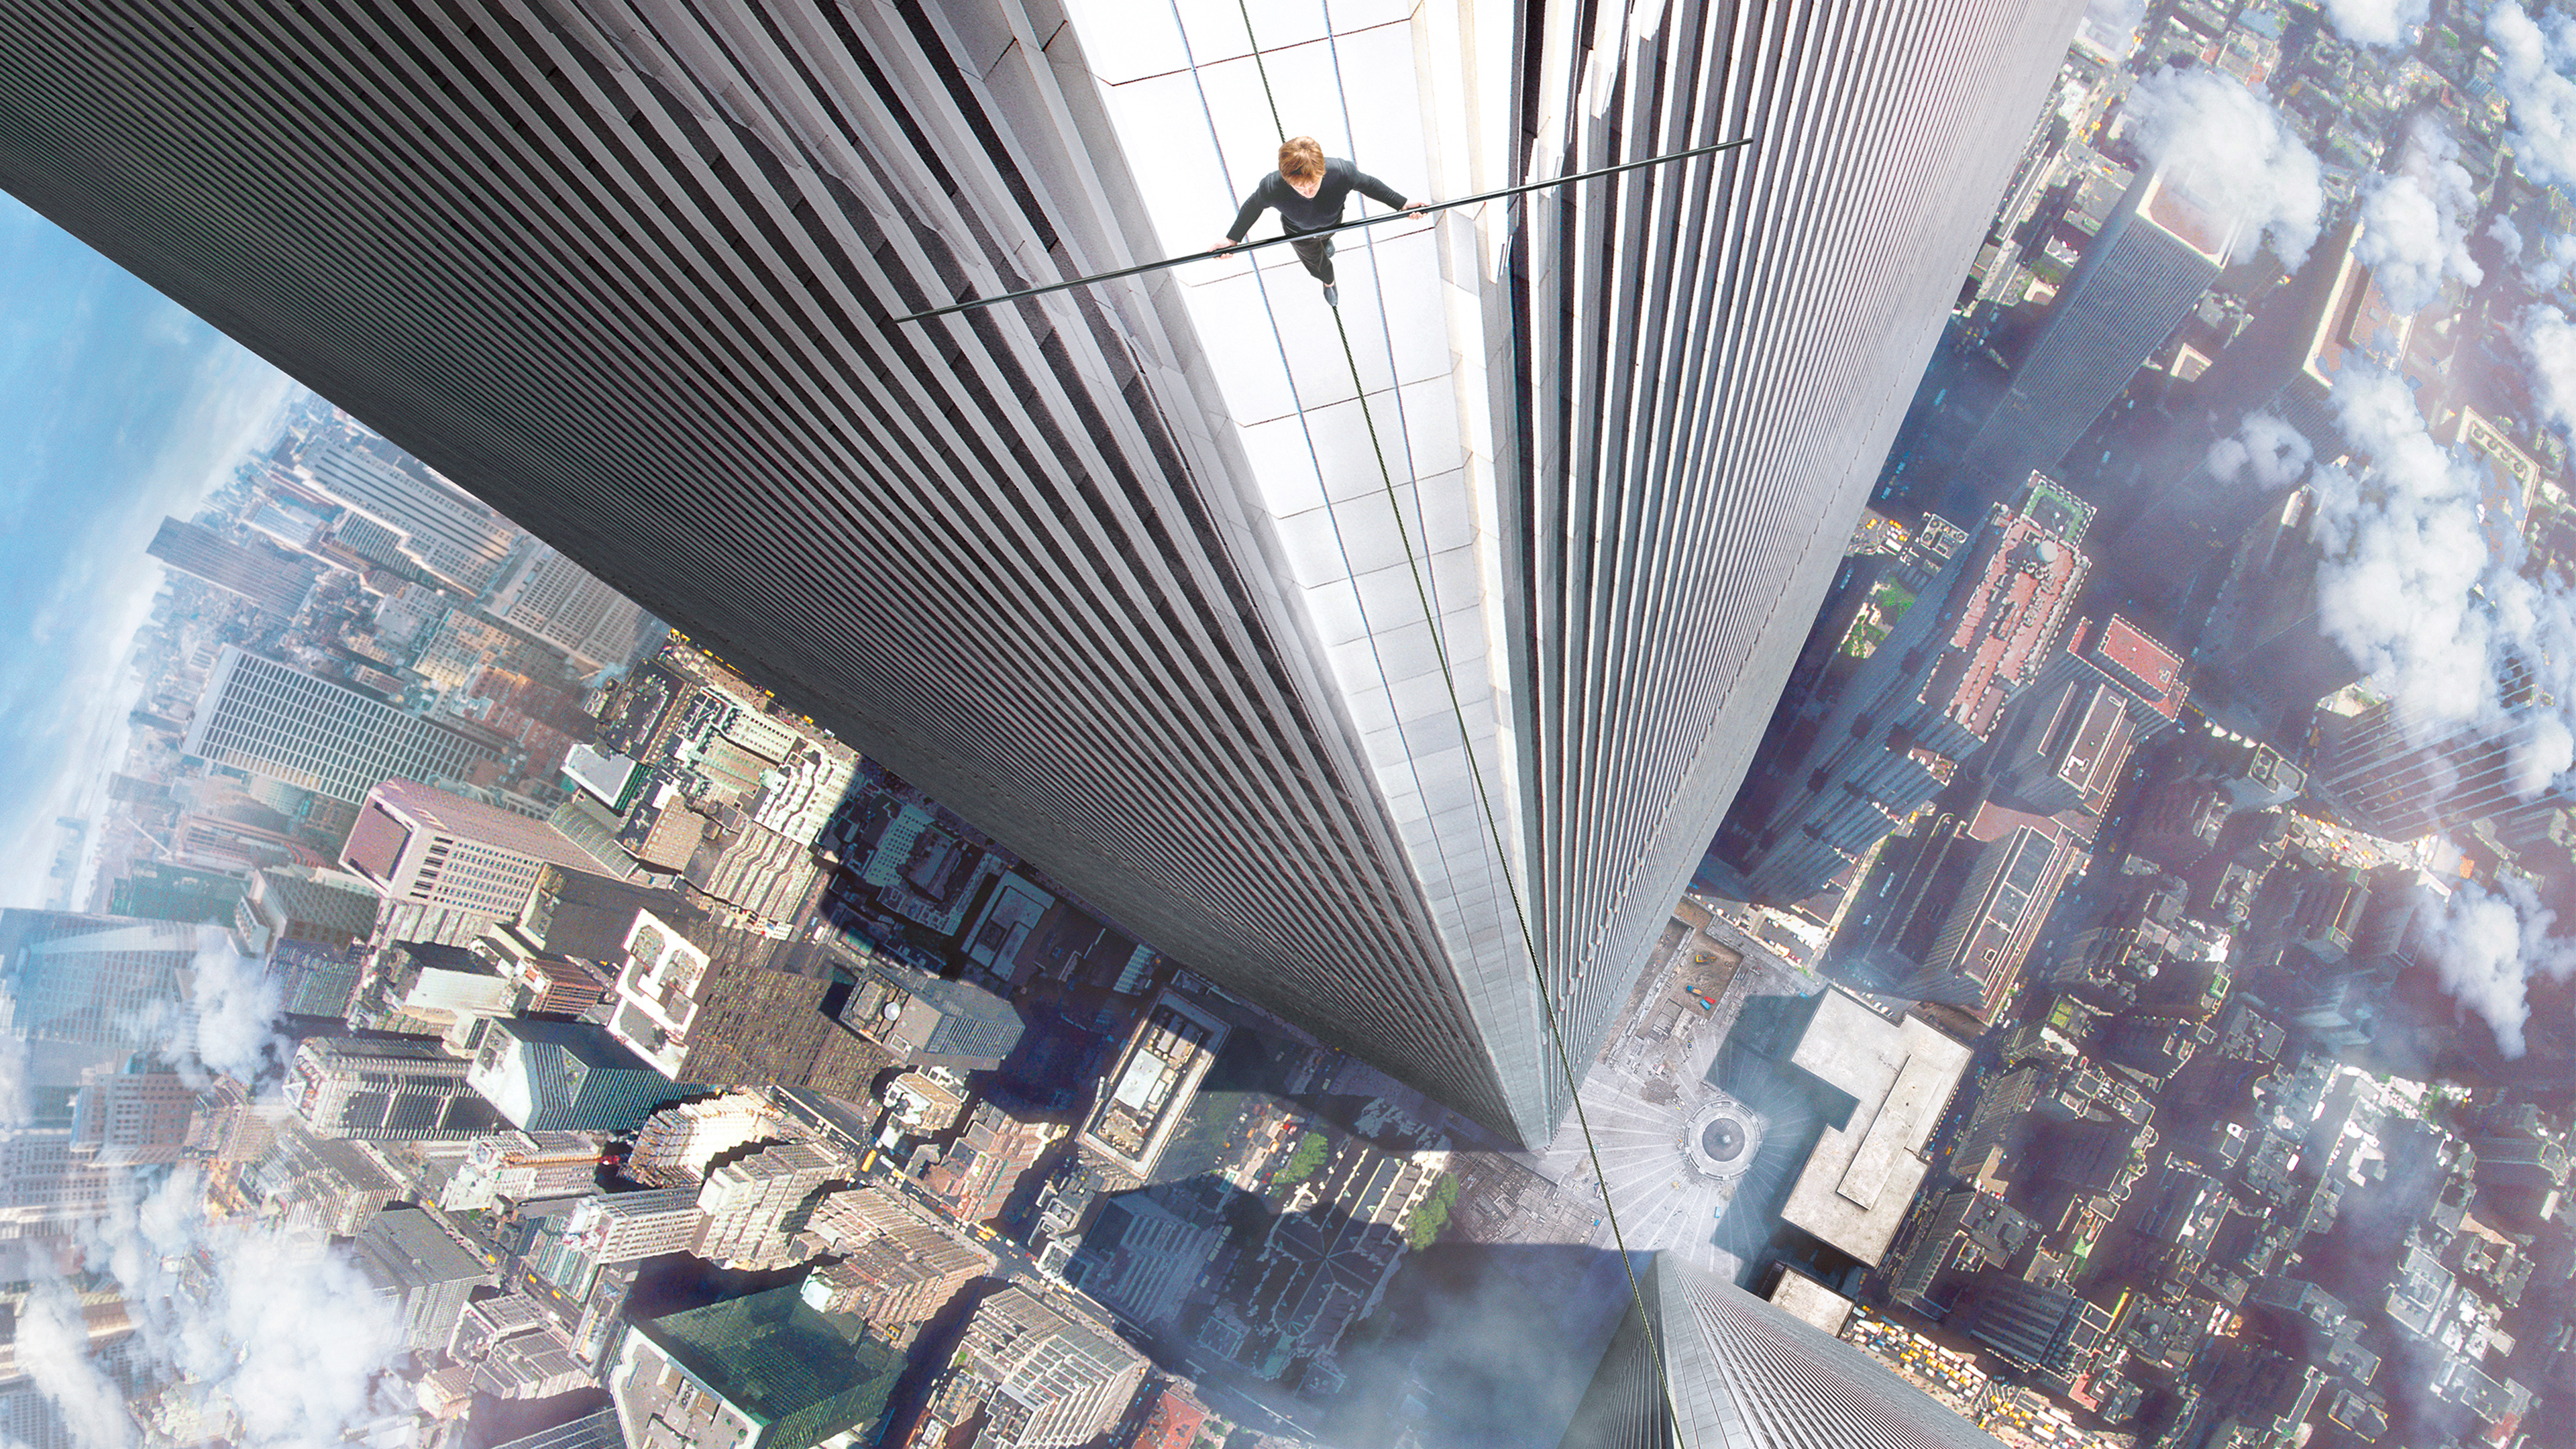 Joseph Gordon-Levitt, The Walk, Philippe Petit